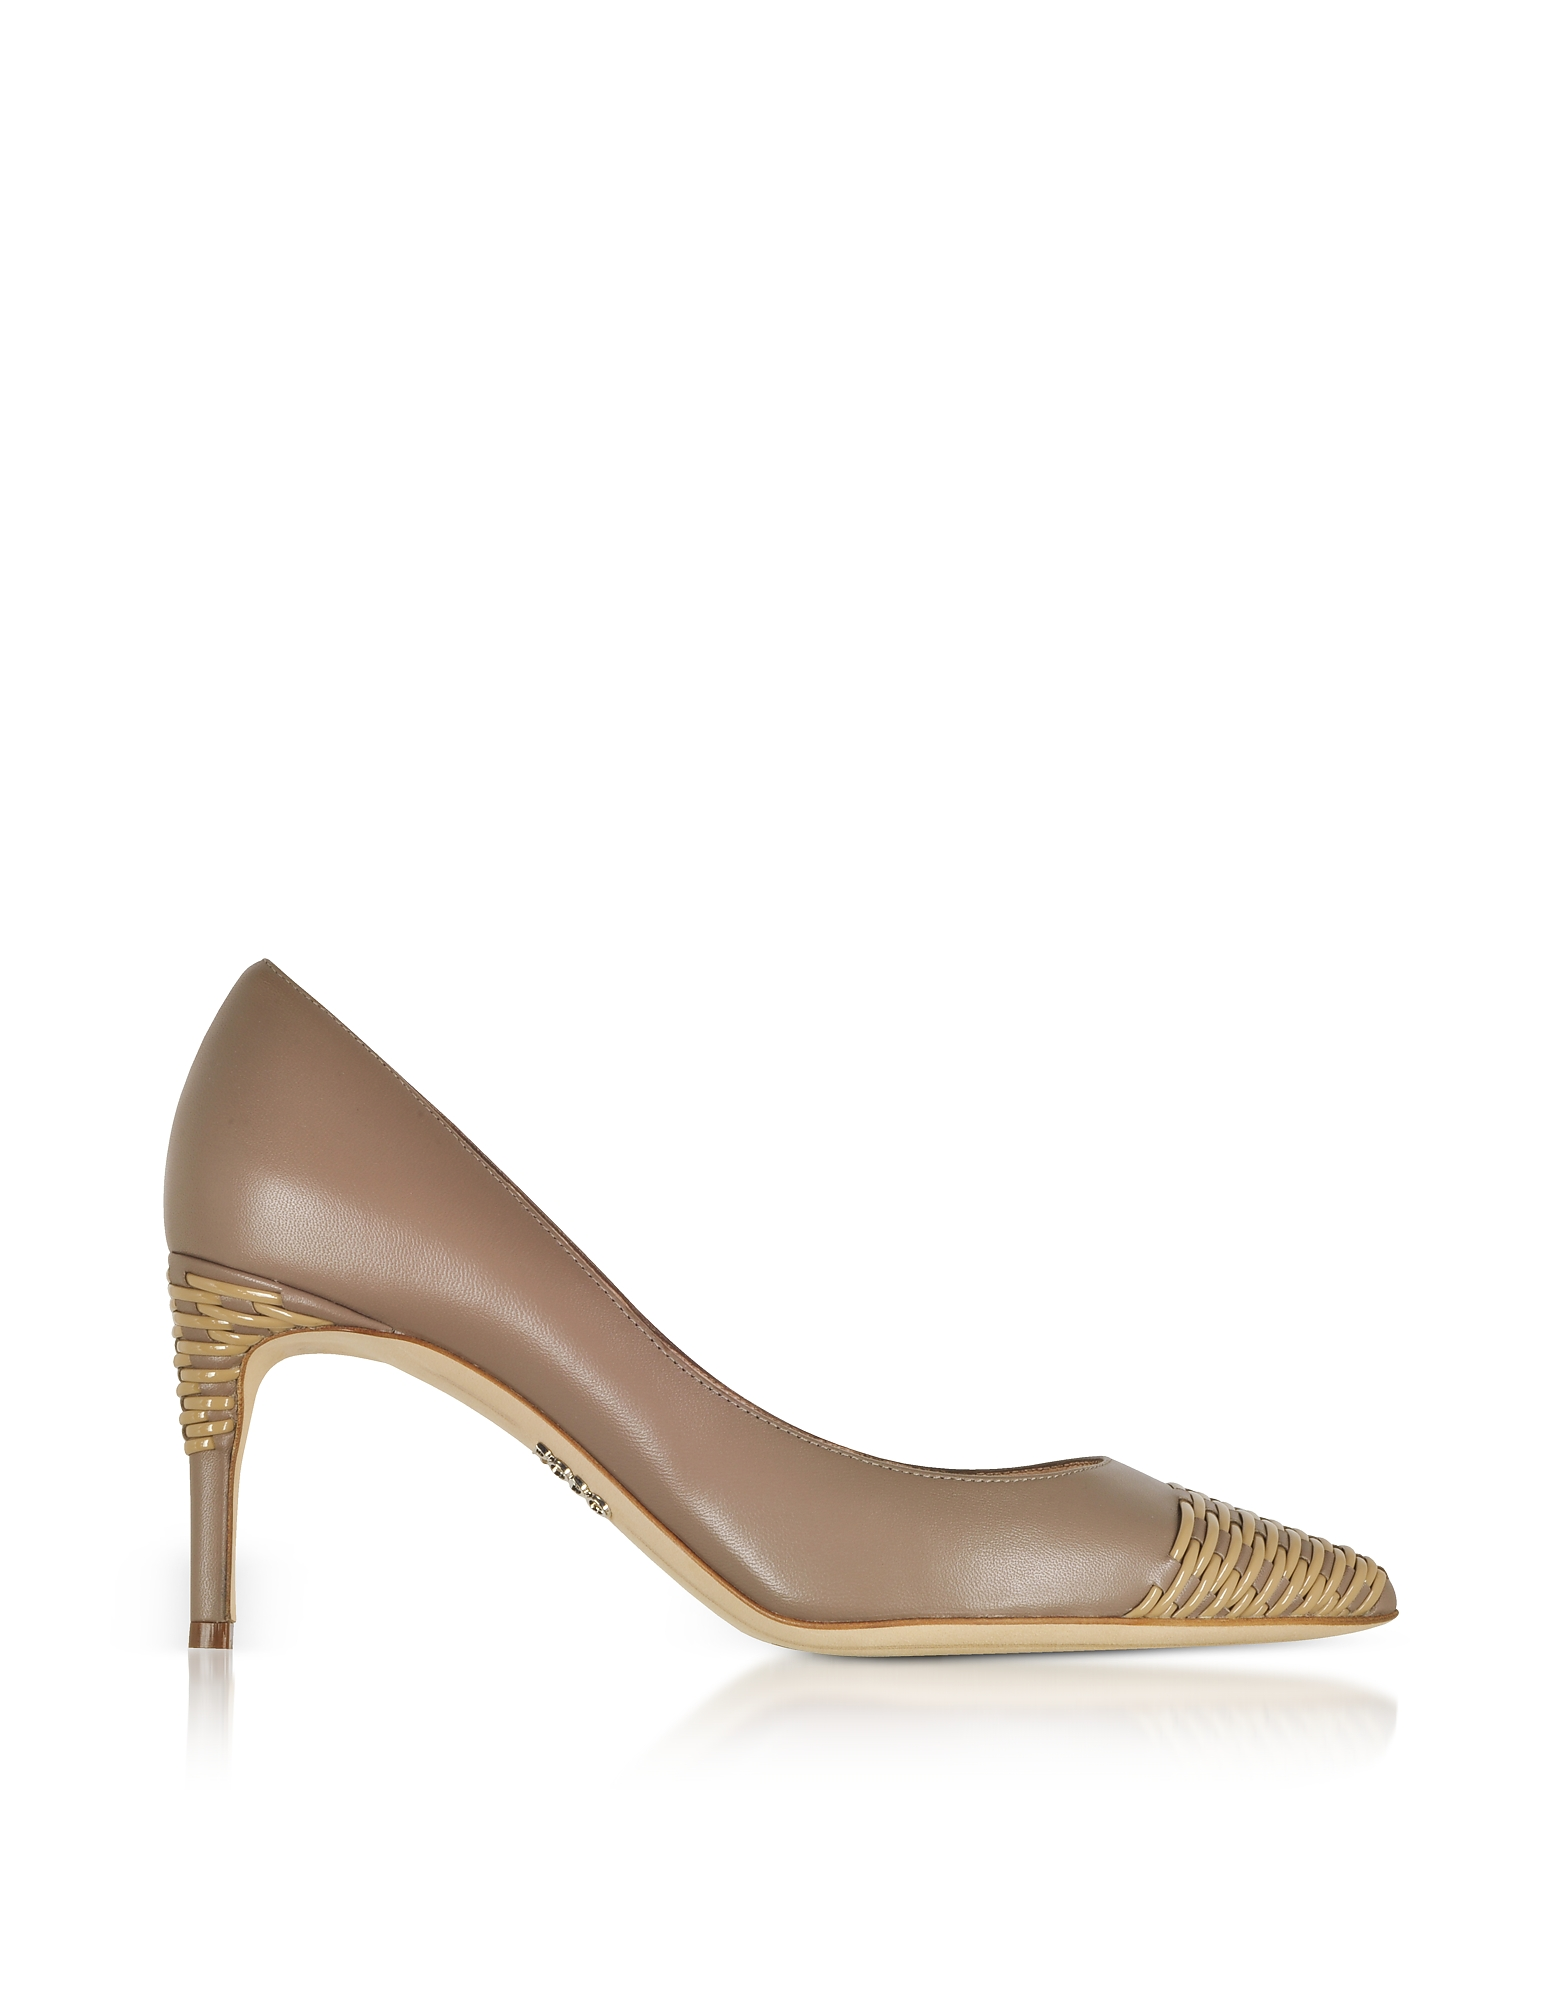 Rodo Designer Shoes, Taupe Smooth and Woven Leather Pointed Toe Heel Pumps